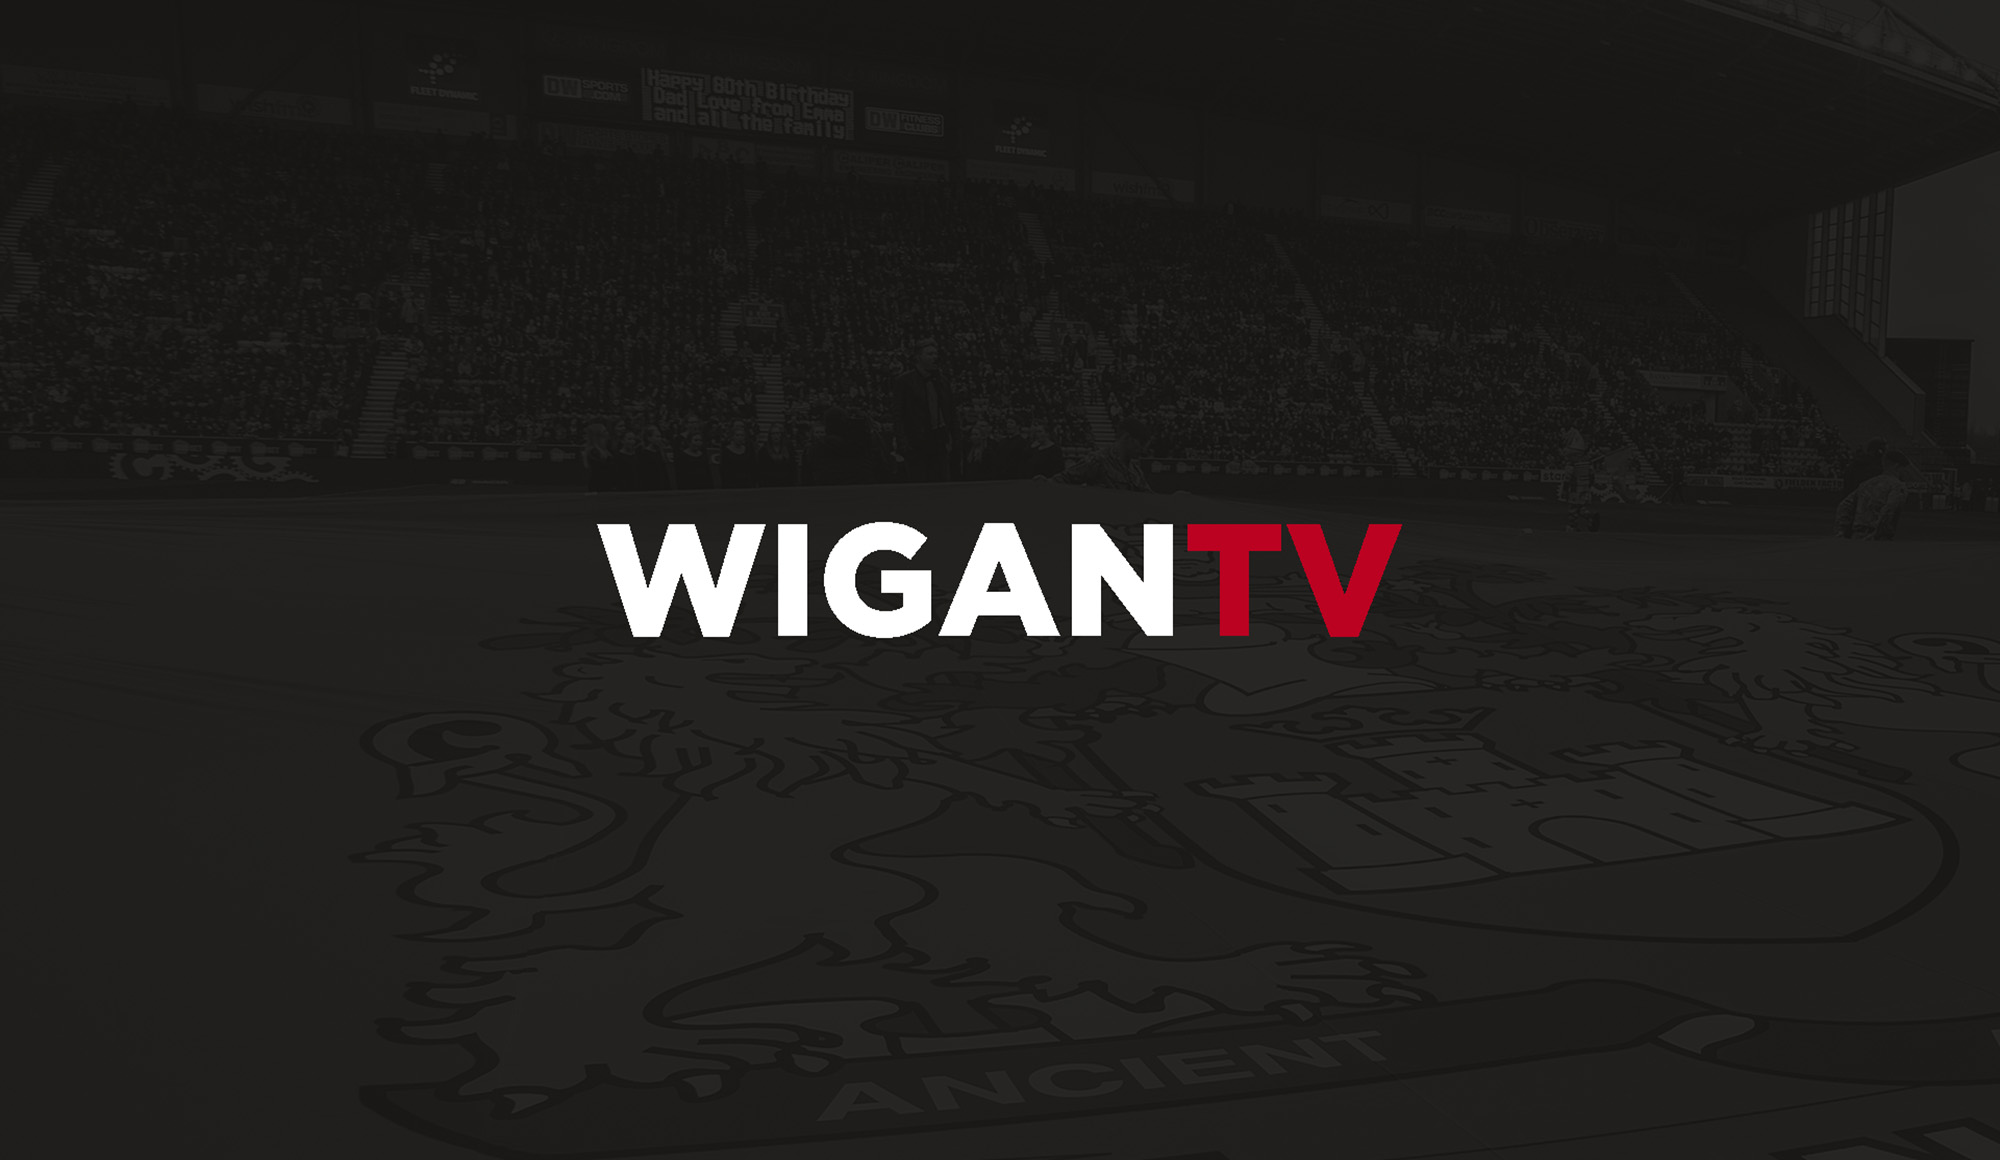 Free Wigan TV deadline approaches